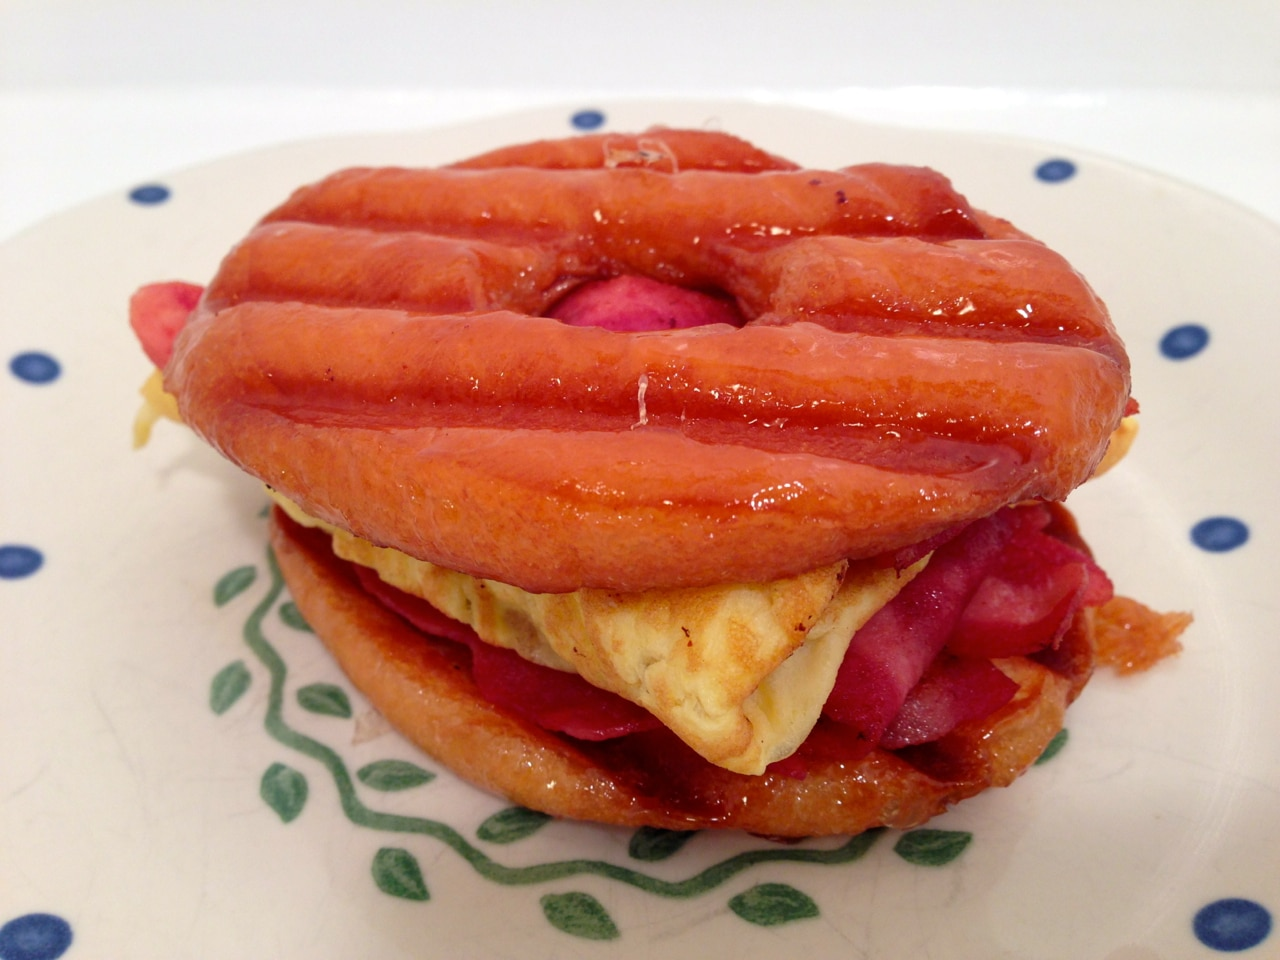 Glazed Doughnut Breakfast Sandwich